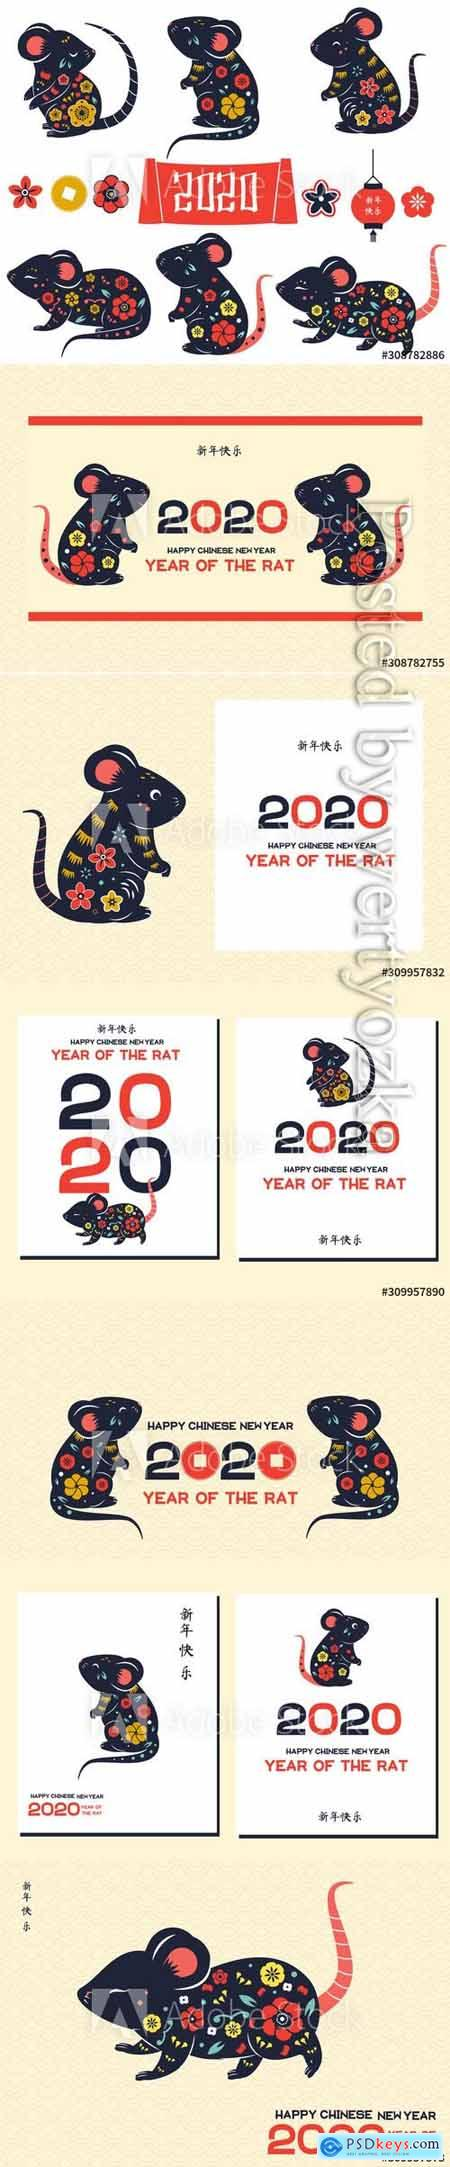 2020 year of rat, Chinese new year banner with decorated mouse